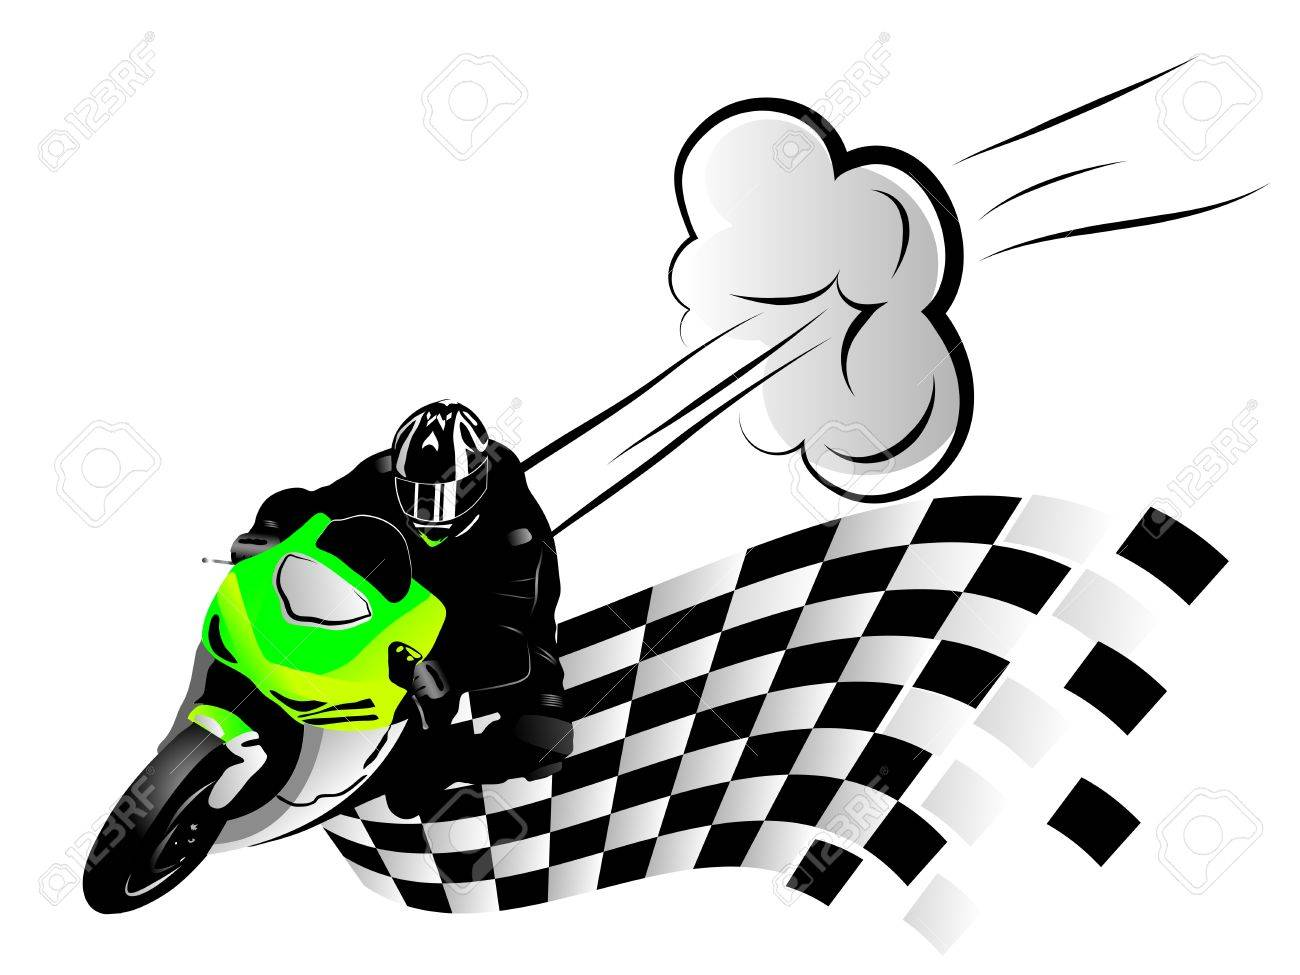 illustration of motorcycle racer and finish flag Stock Vector - 21020602